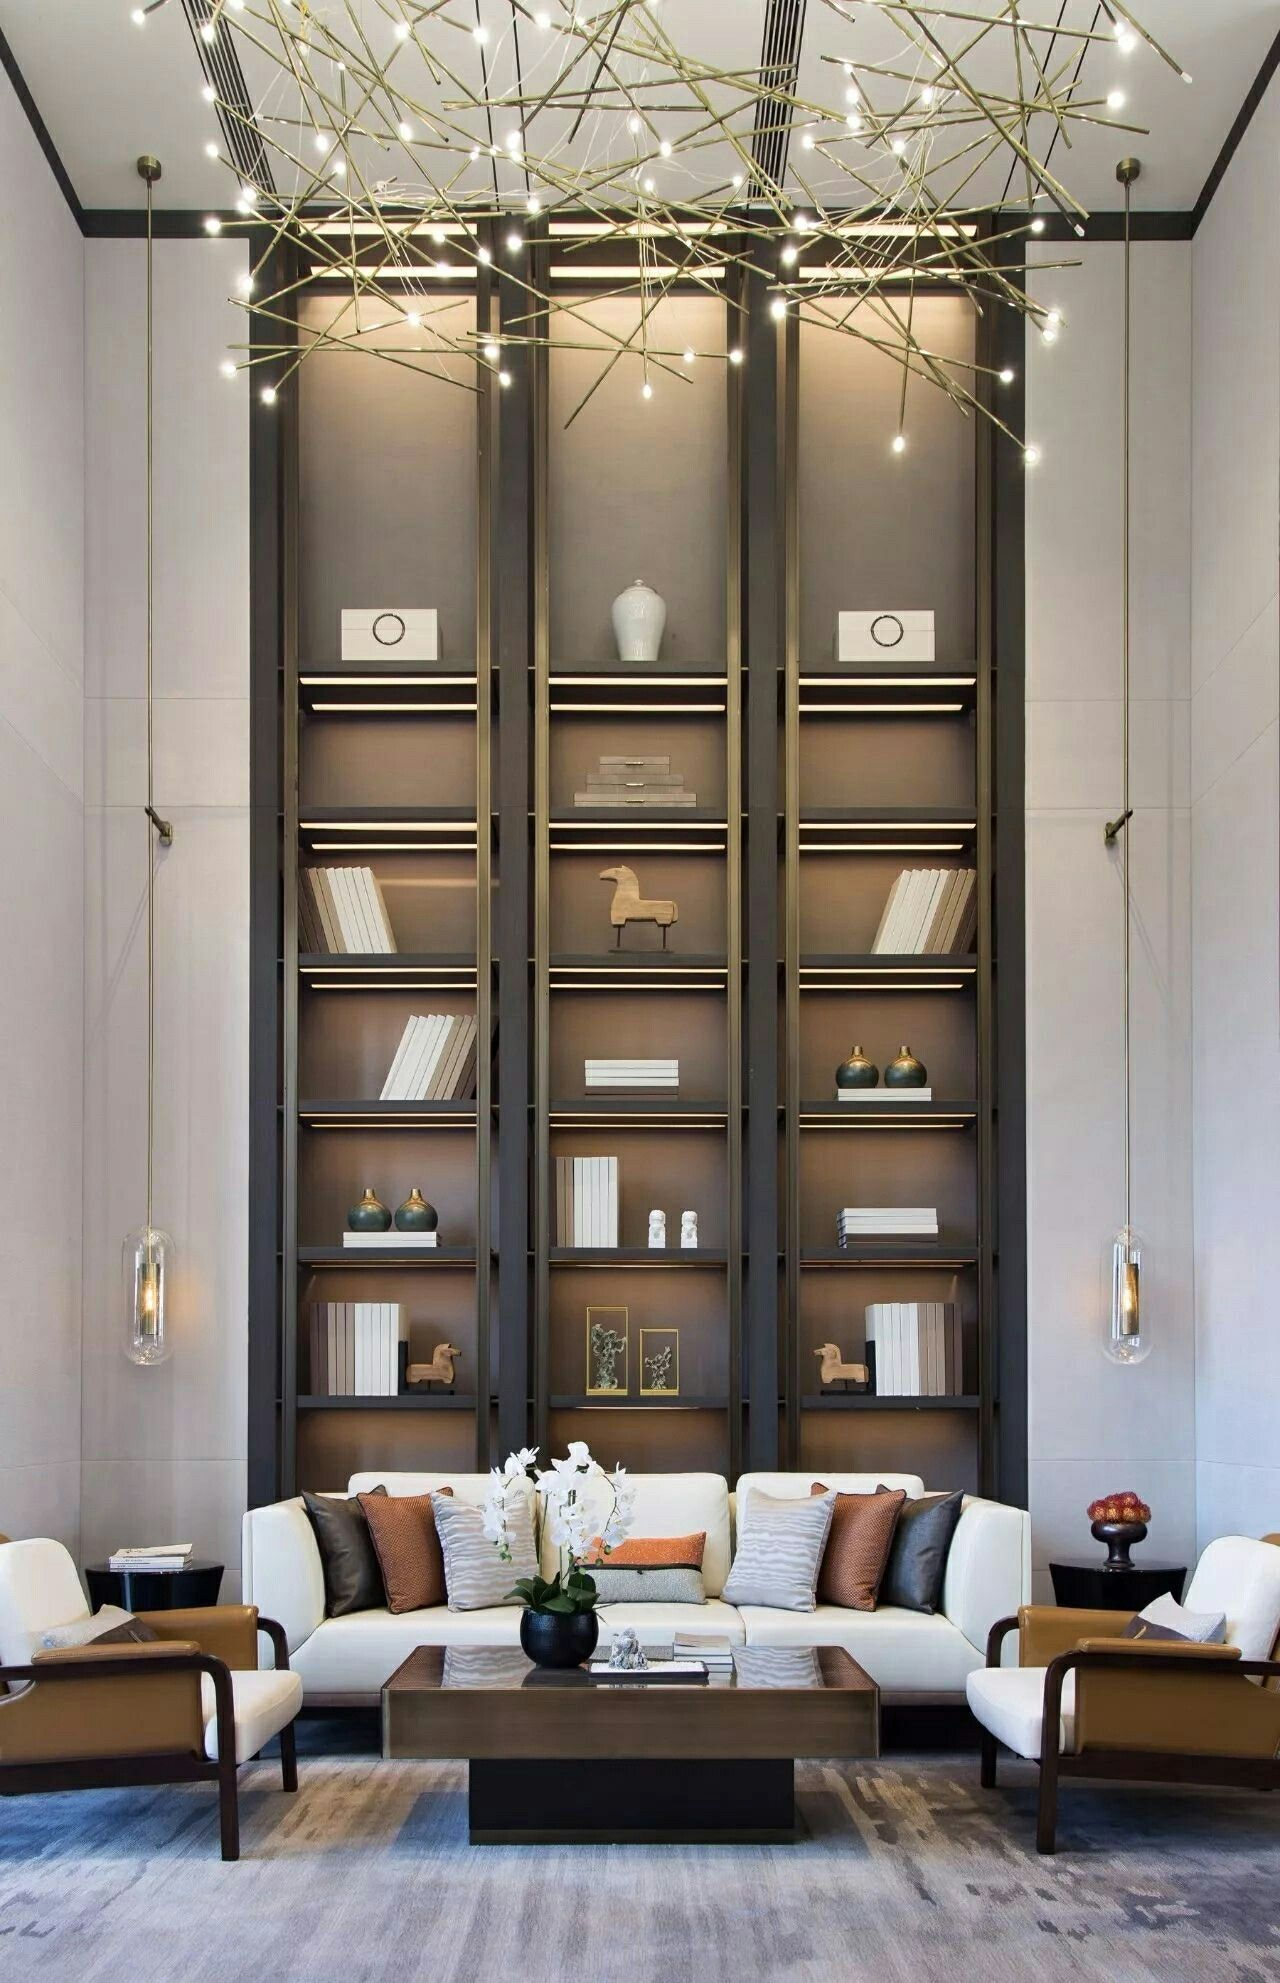 Office Interior Design Is Agreed Important For Your Home. Whether You Choose The Corporate